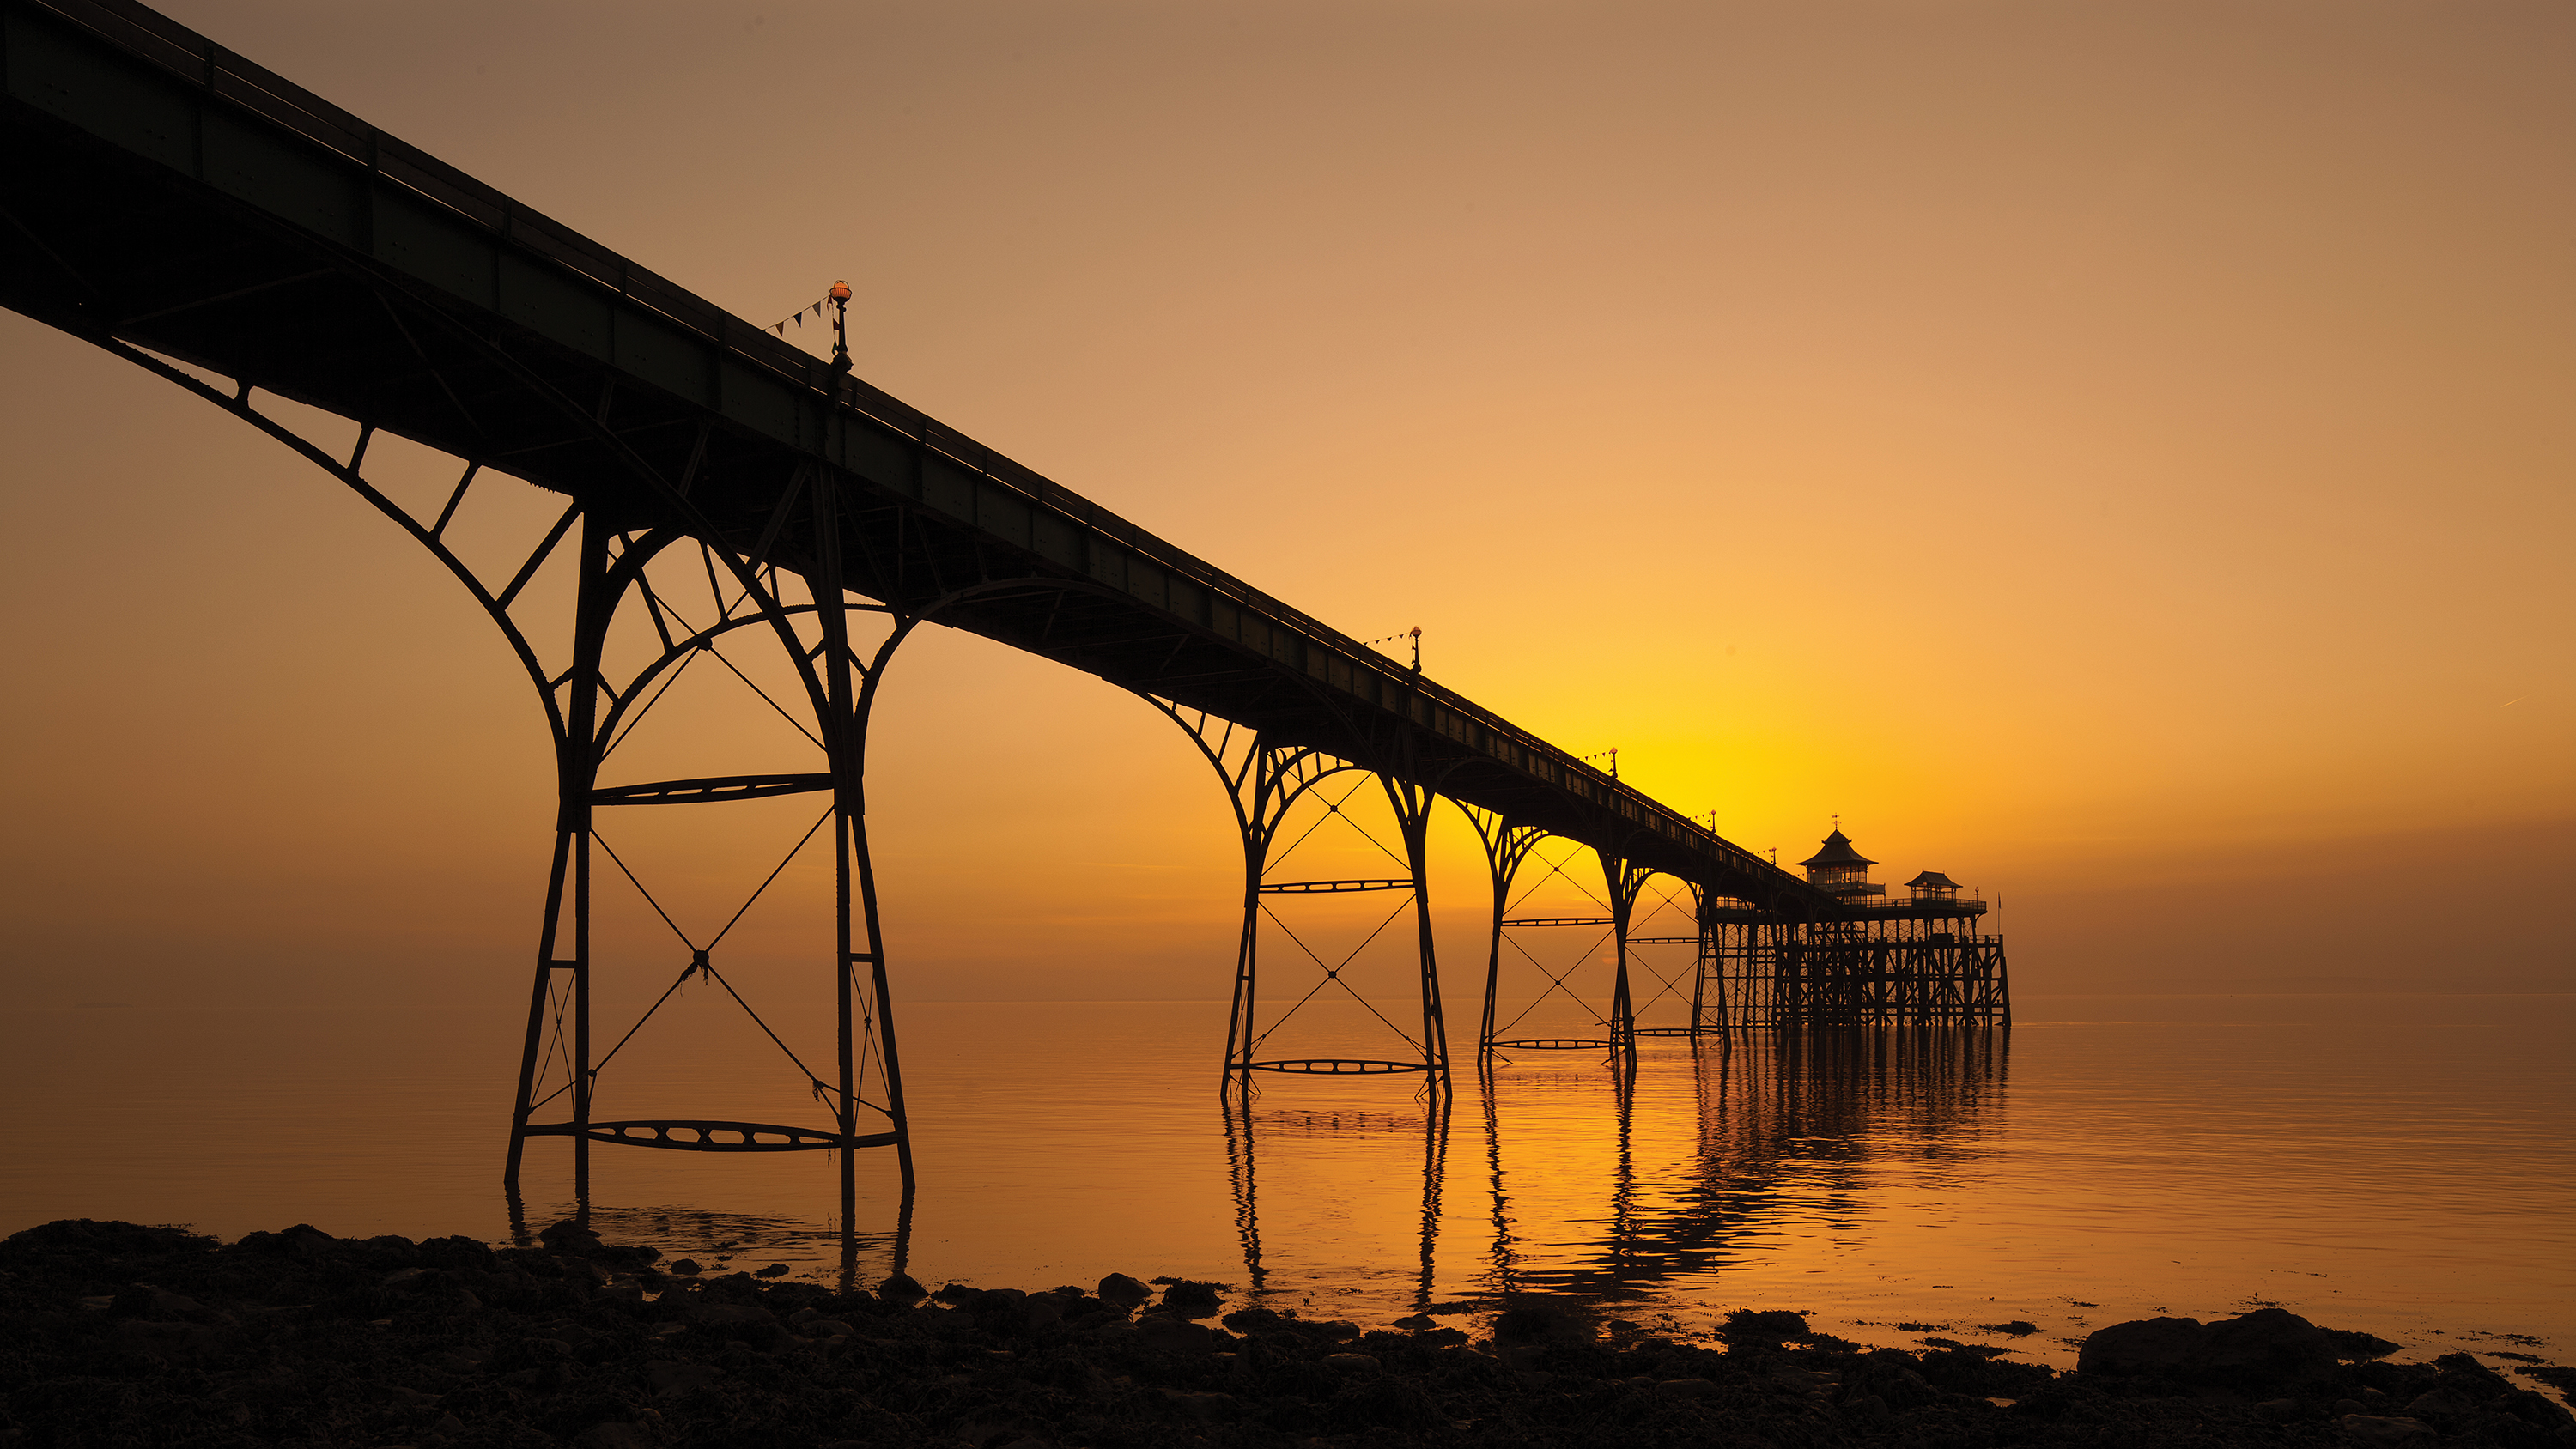 The best camera settings for sunset photography | TechRadar